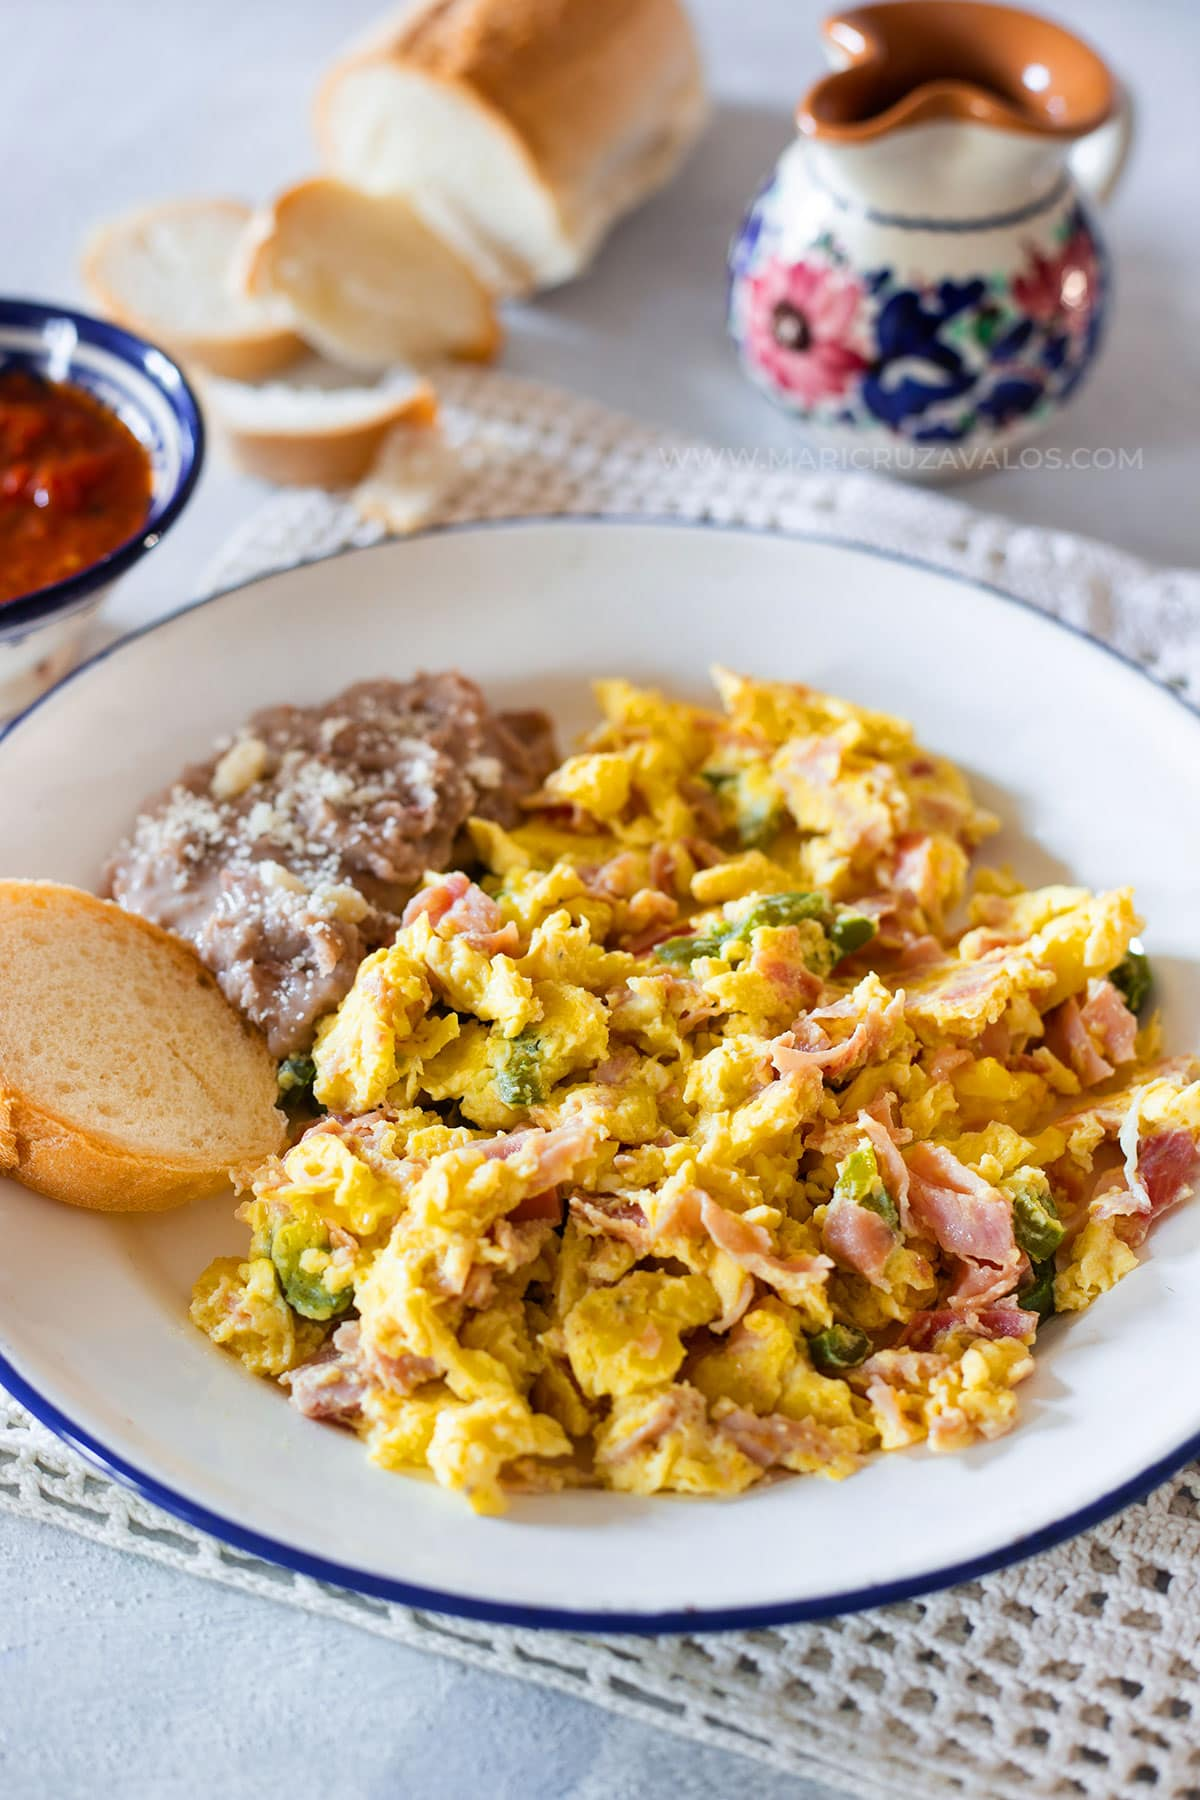 Huevos con jamon served with refried beans.